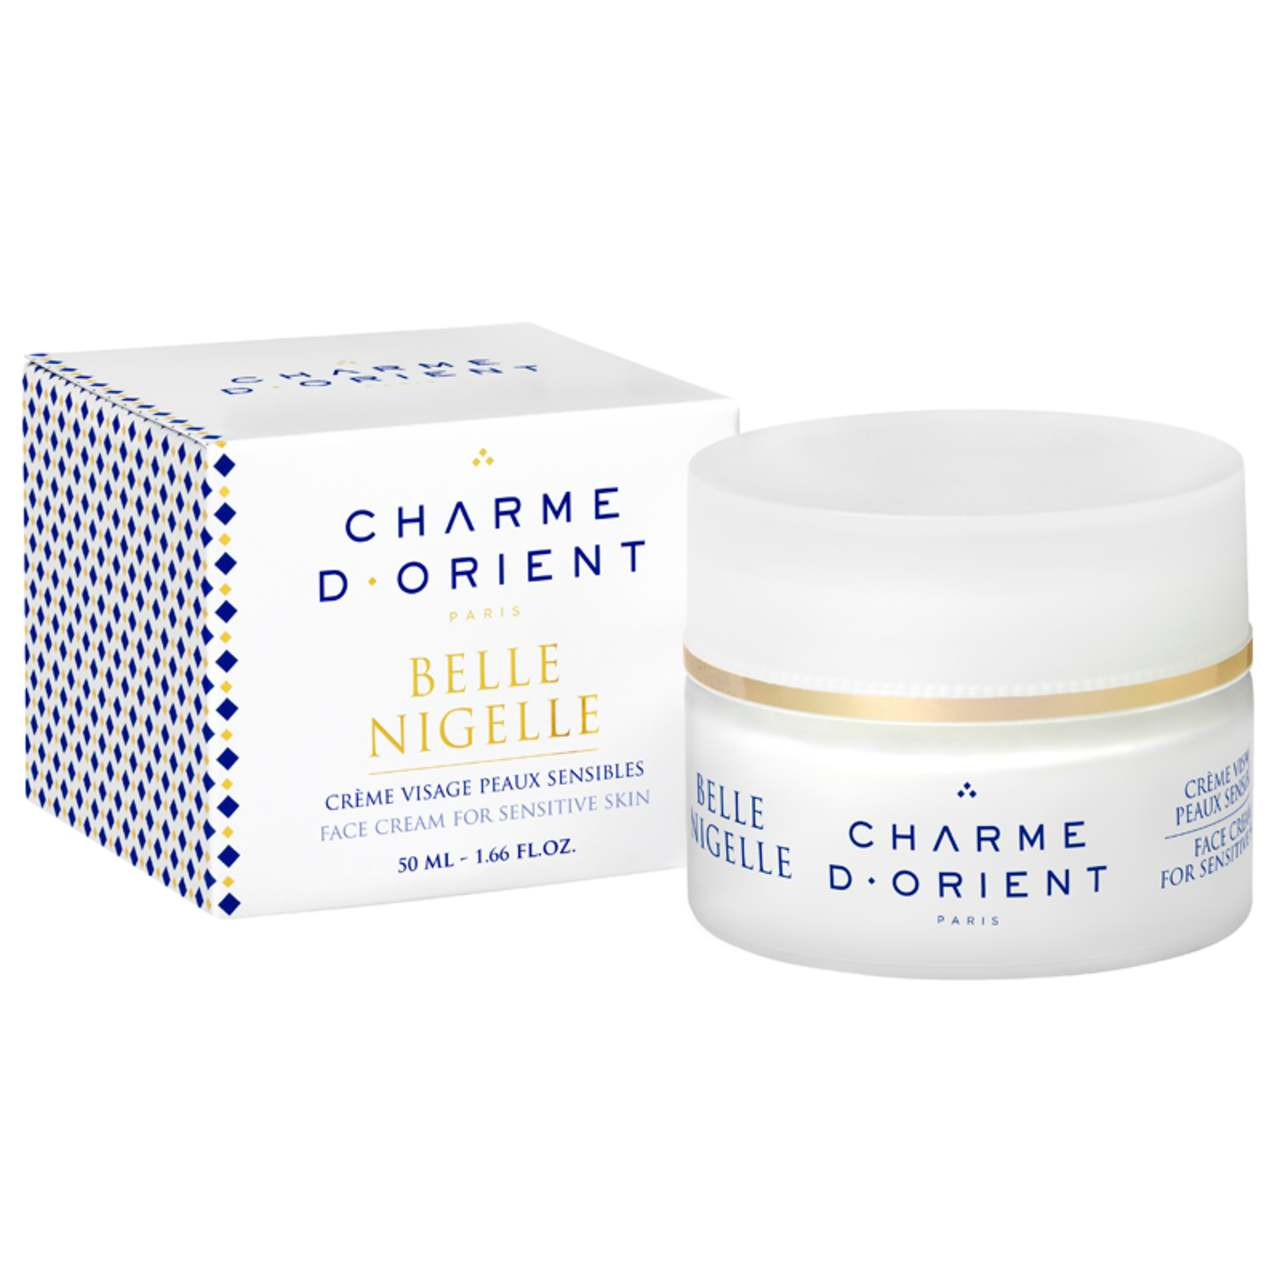 Charme D'Orient BELLE NIGELLE Face Cream for Sensitive Skin